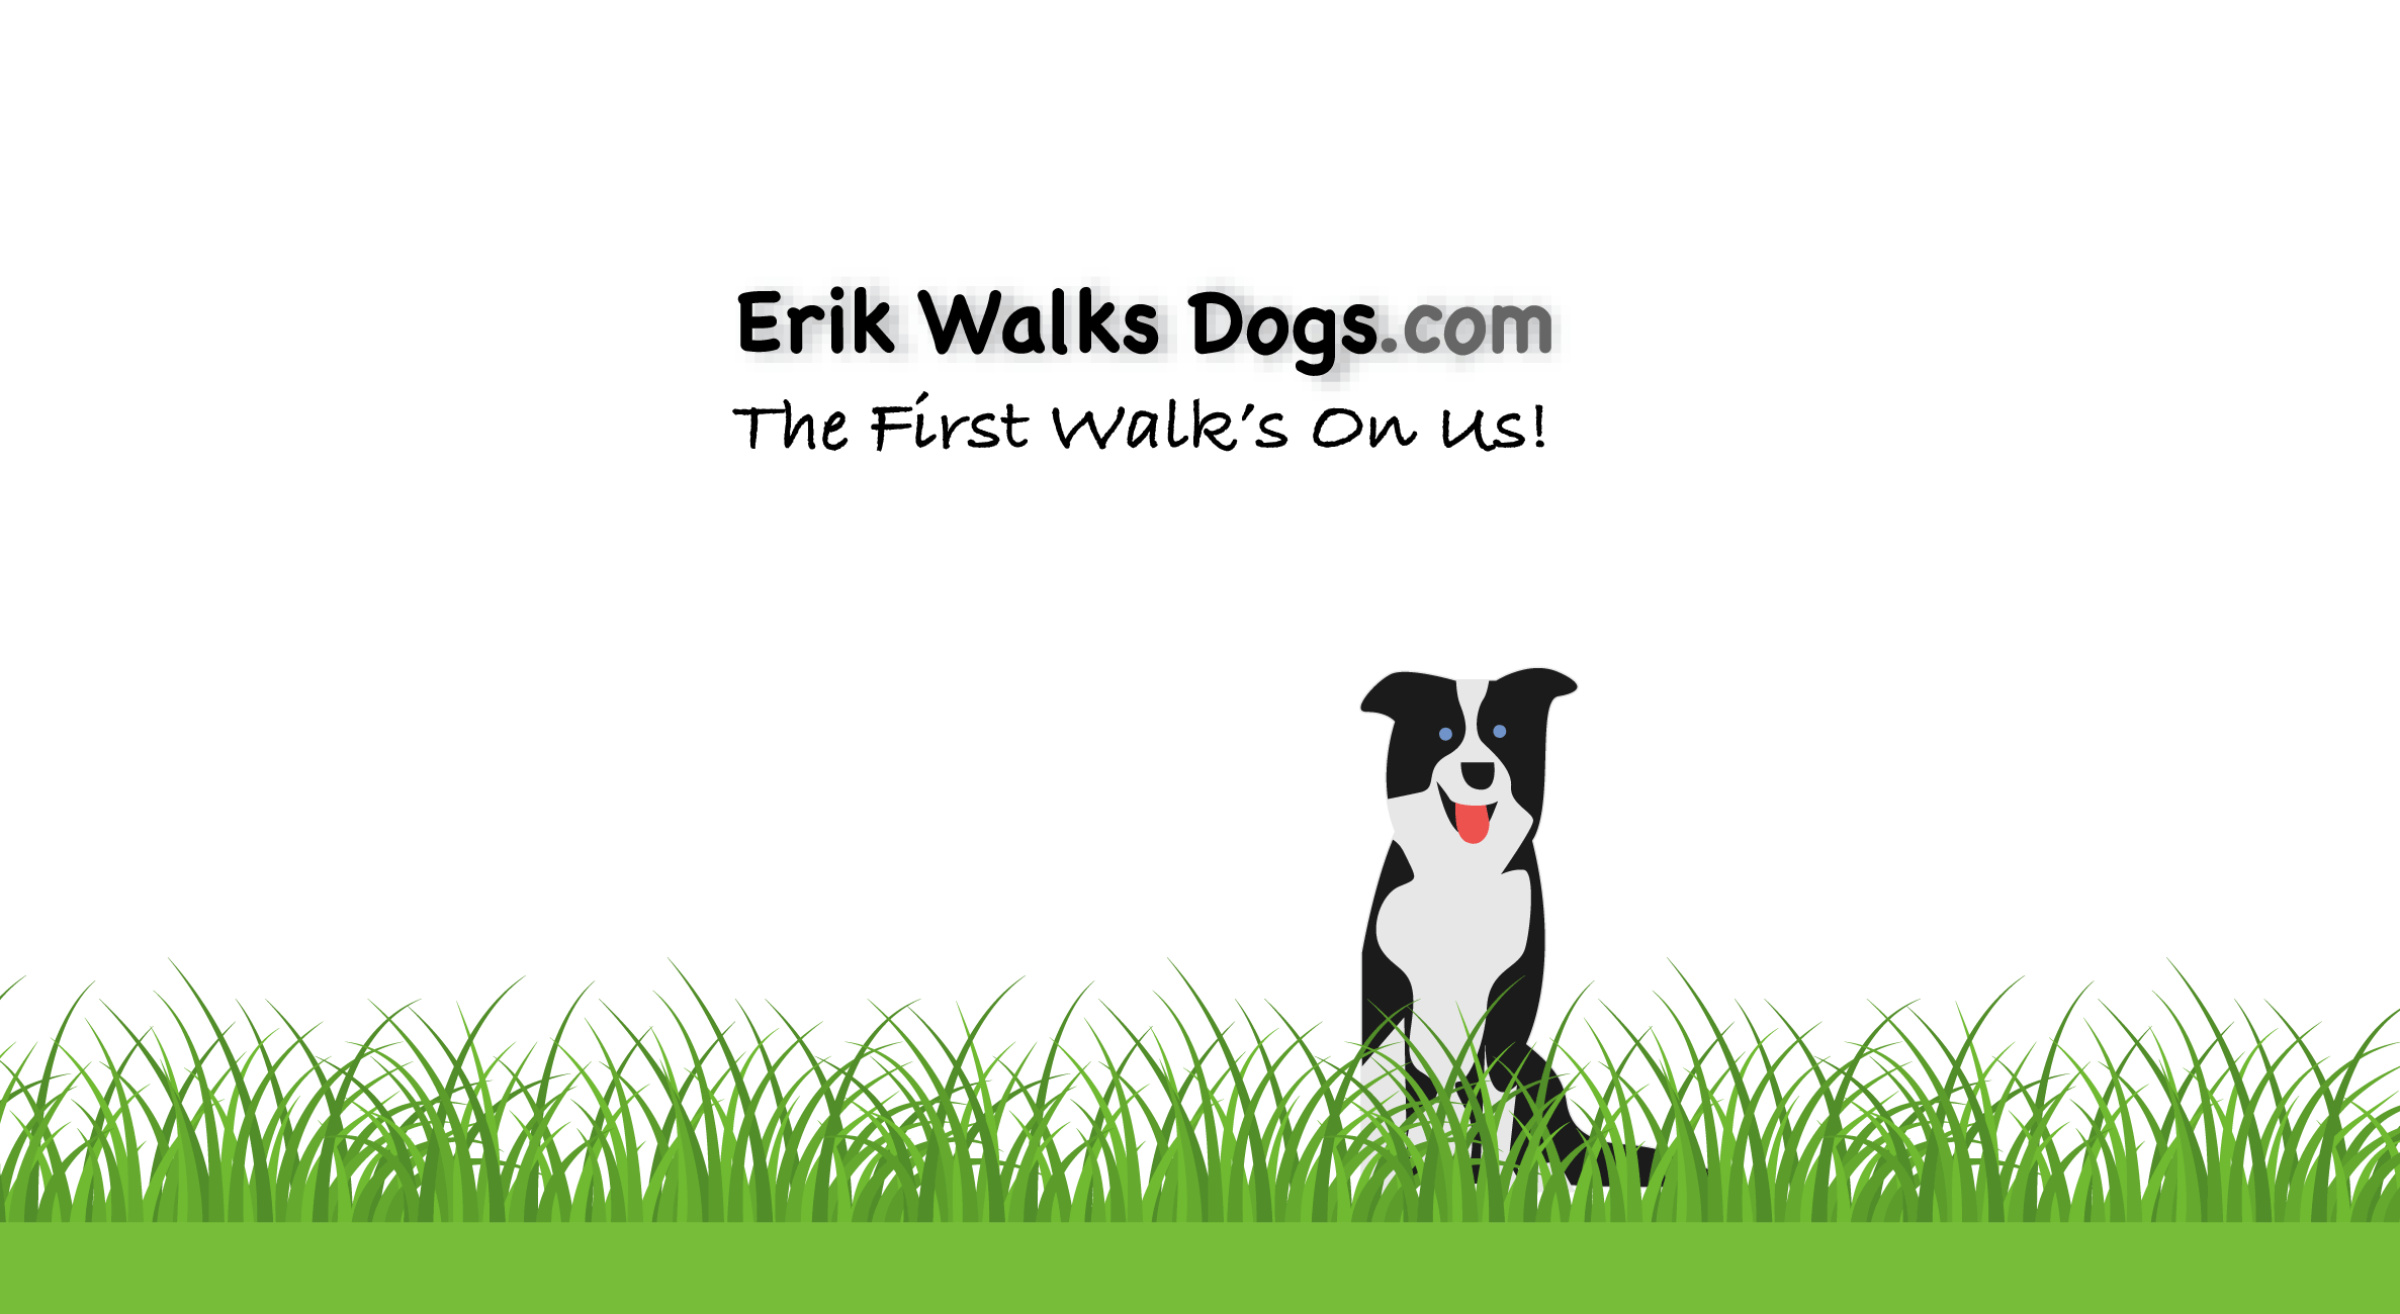 Erik Walks Dogs